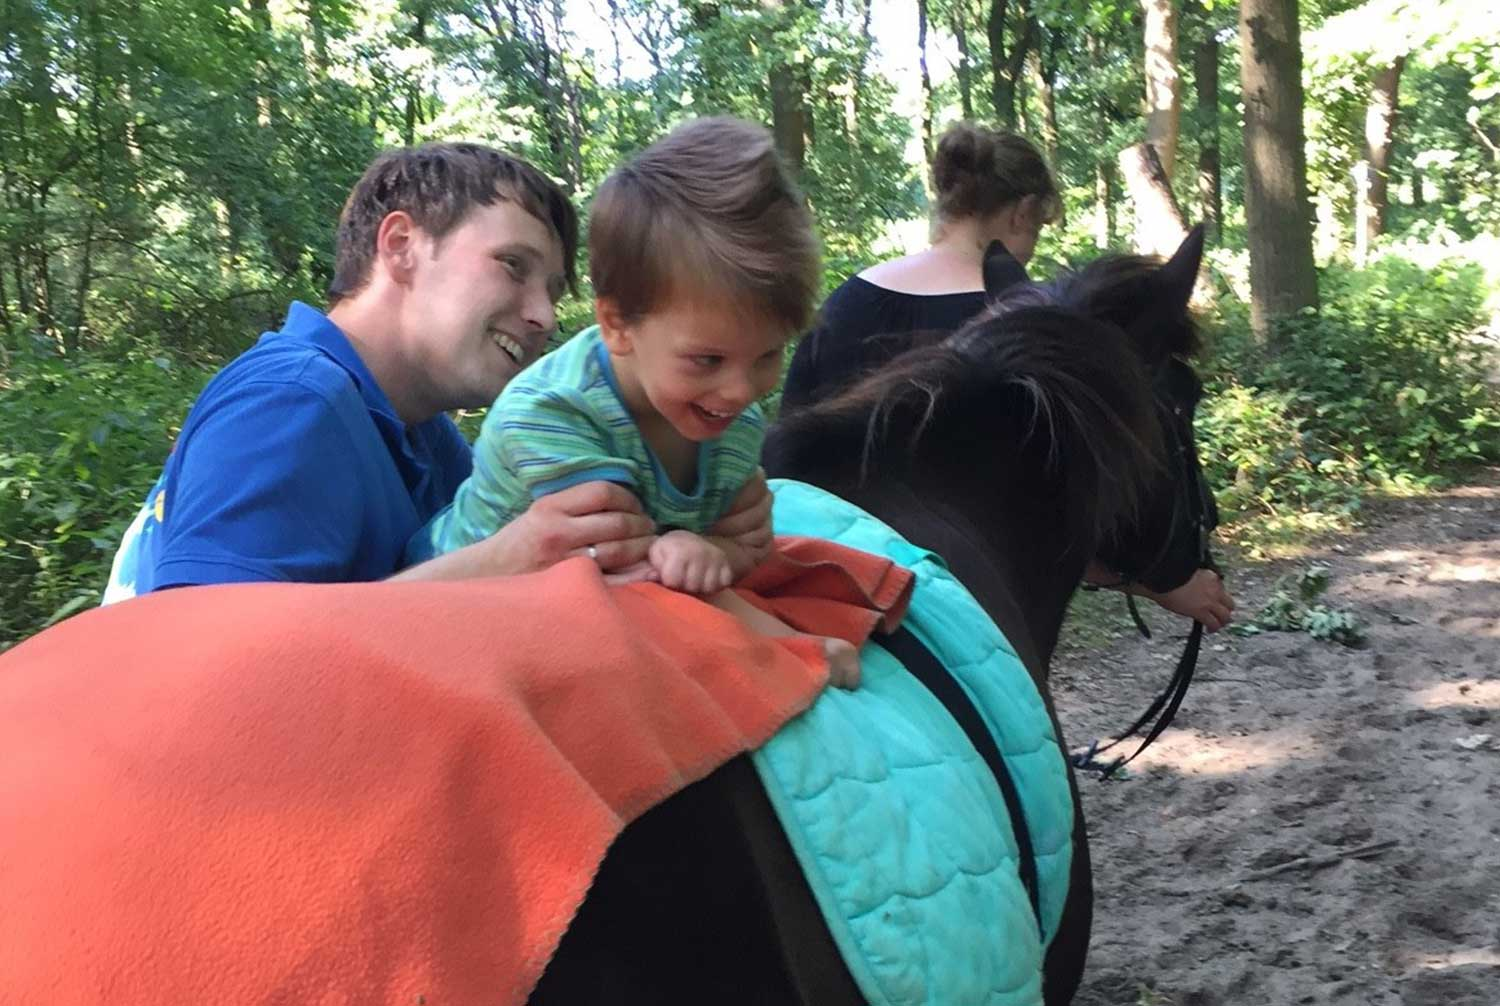 Little boy riding a horse